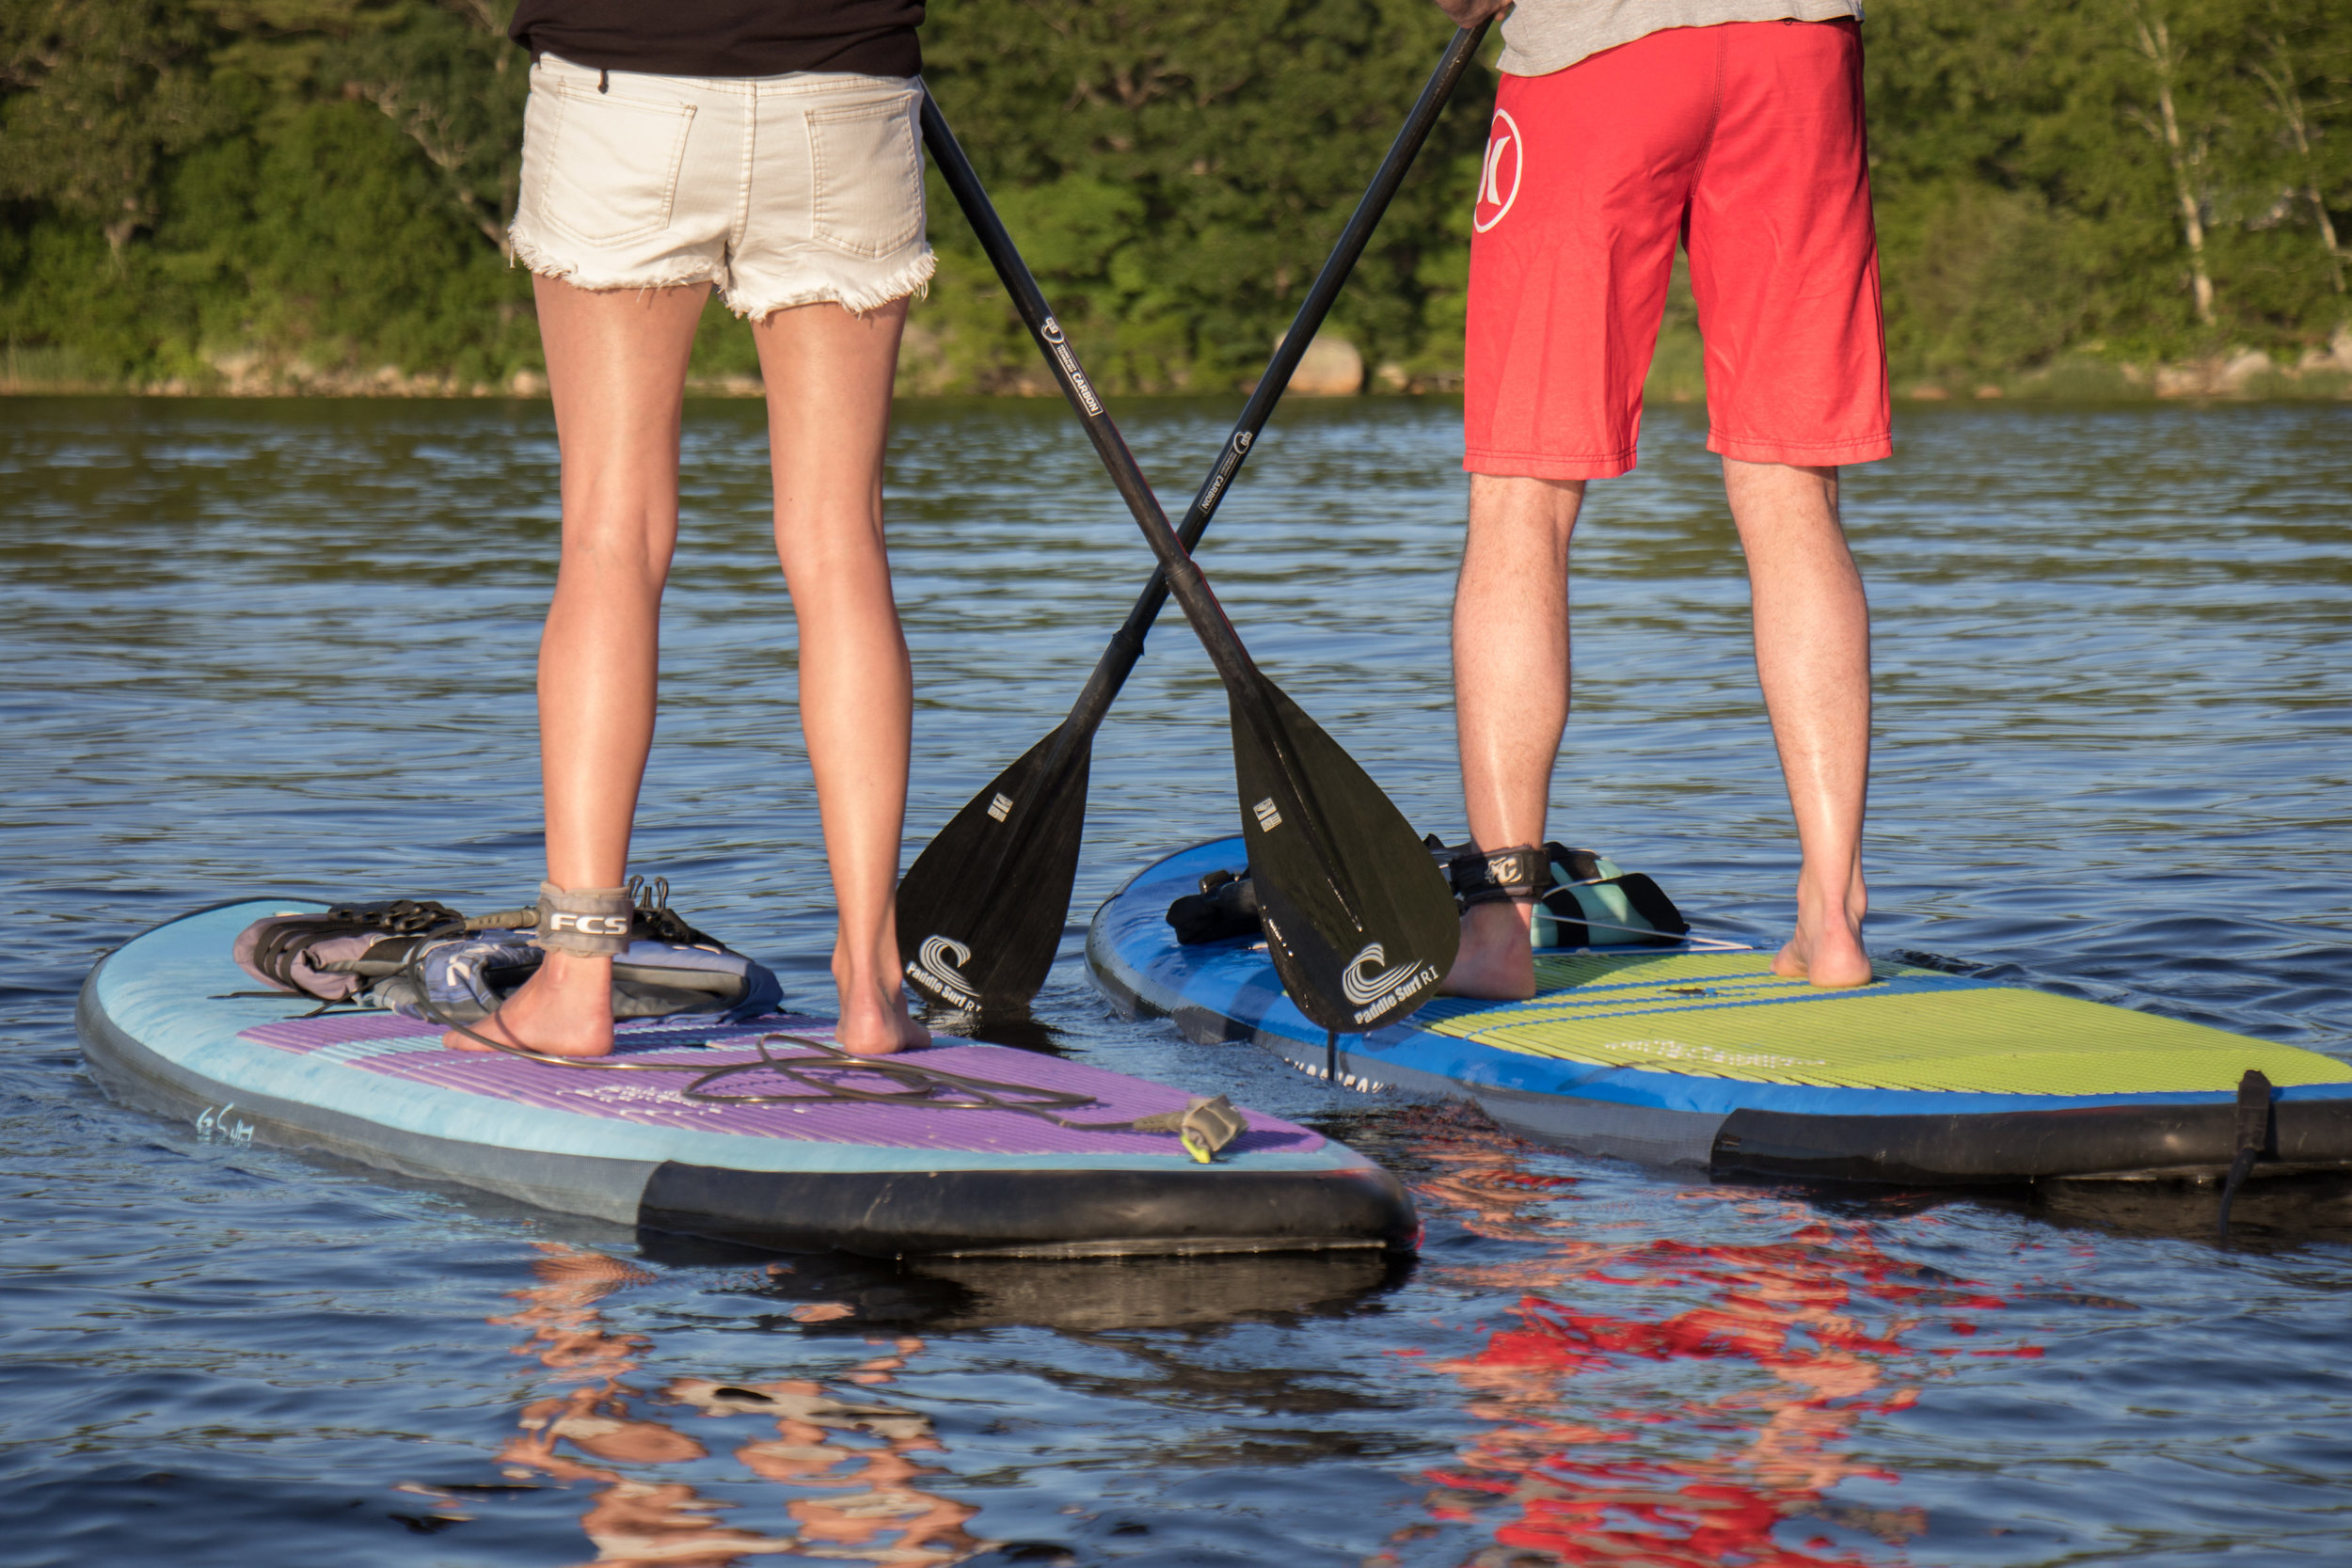 PADDLE LESSONS - Walk on water.